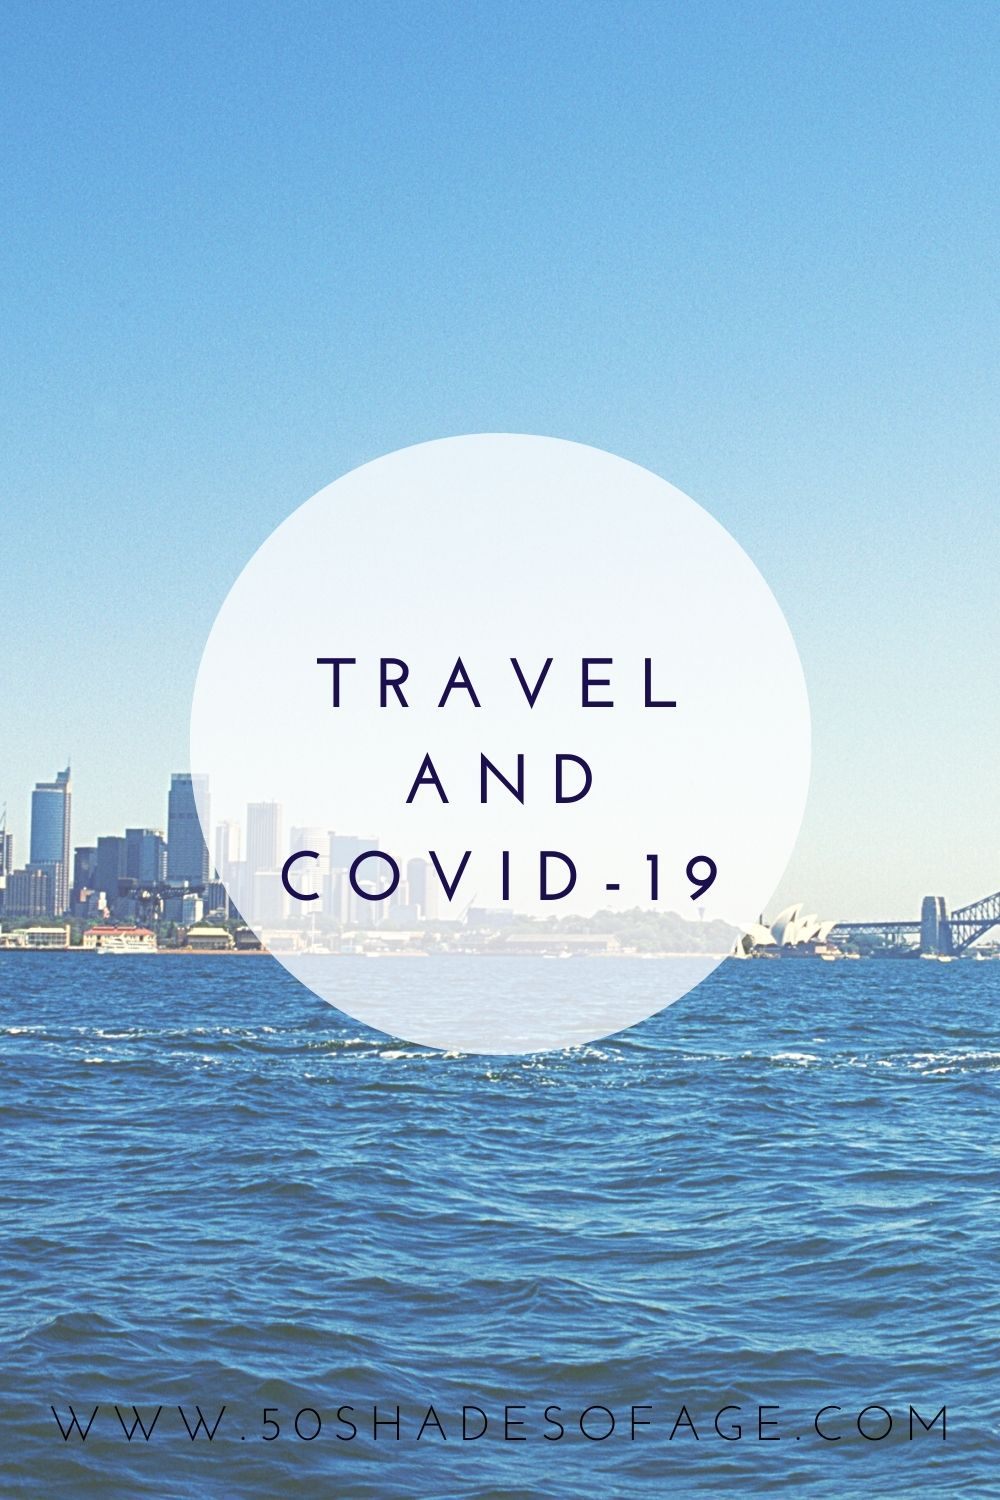 Travel and Covid-19